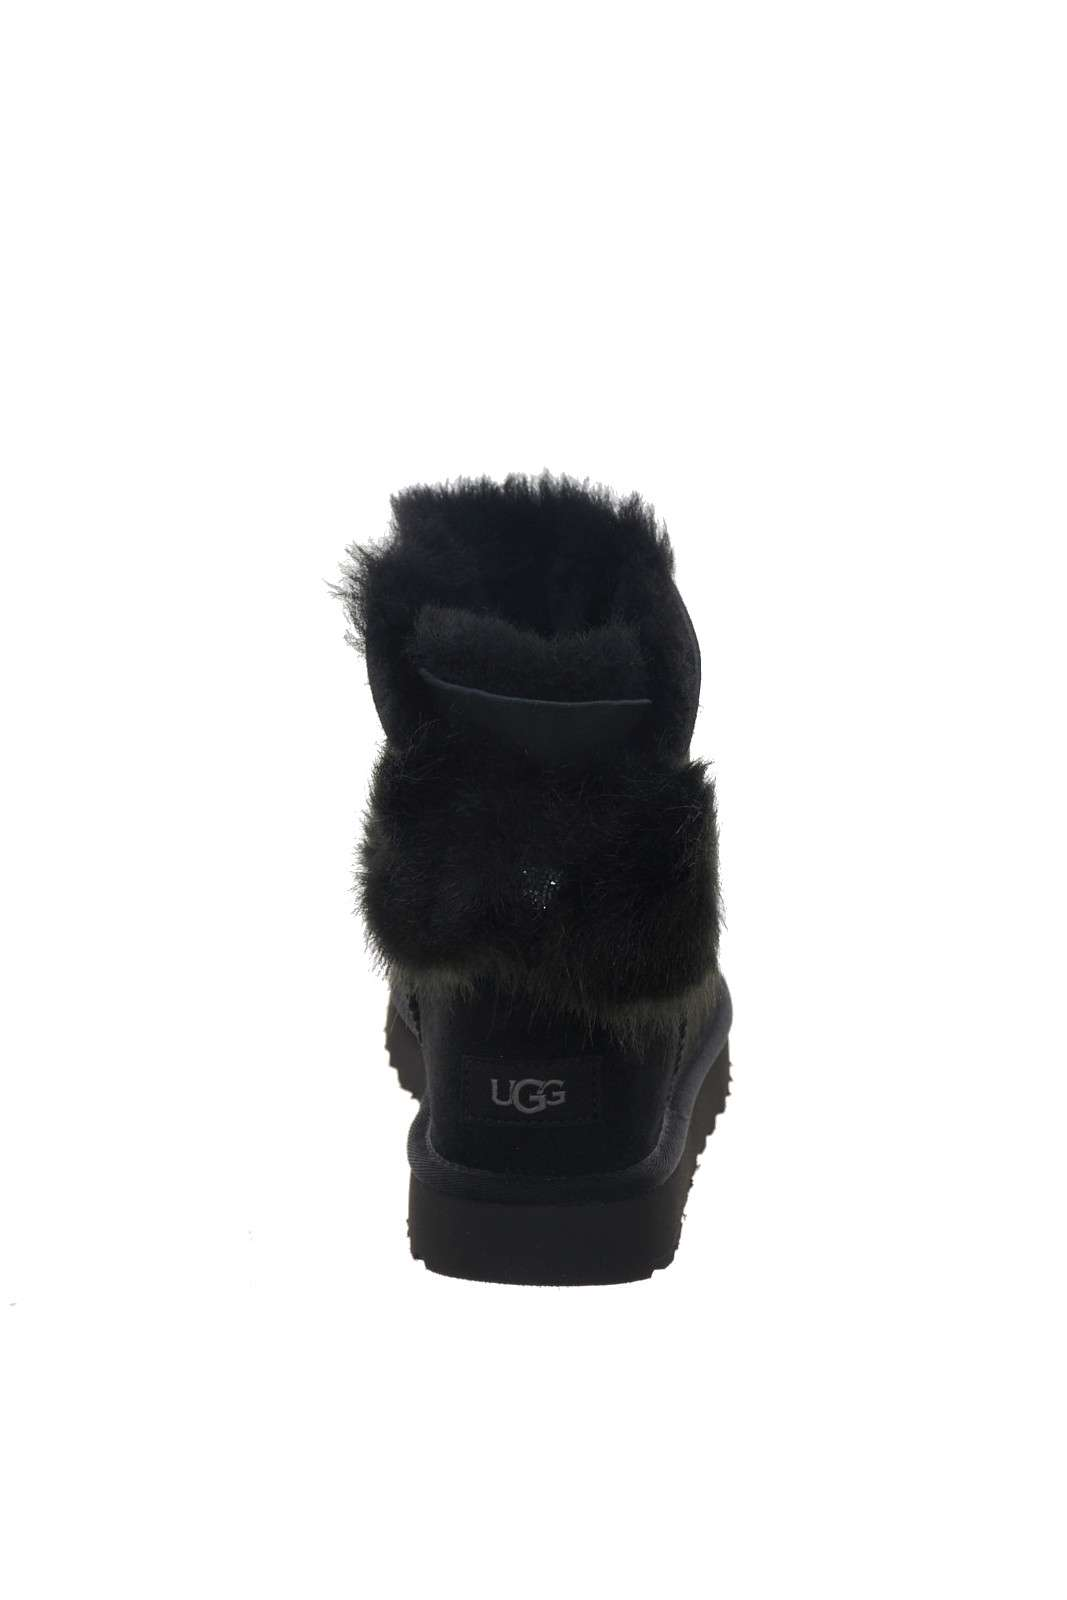 https://www.parmax.com/media/catalog/product/a/i/AI-outlet_parmax-stivaletti-donna-Ugg-1103776-C.jpg